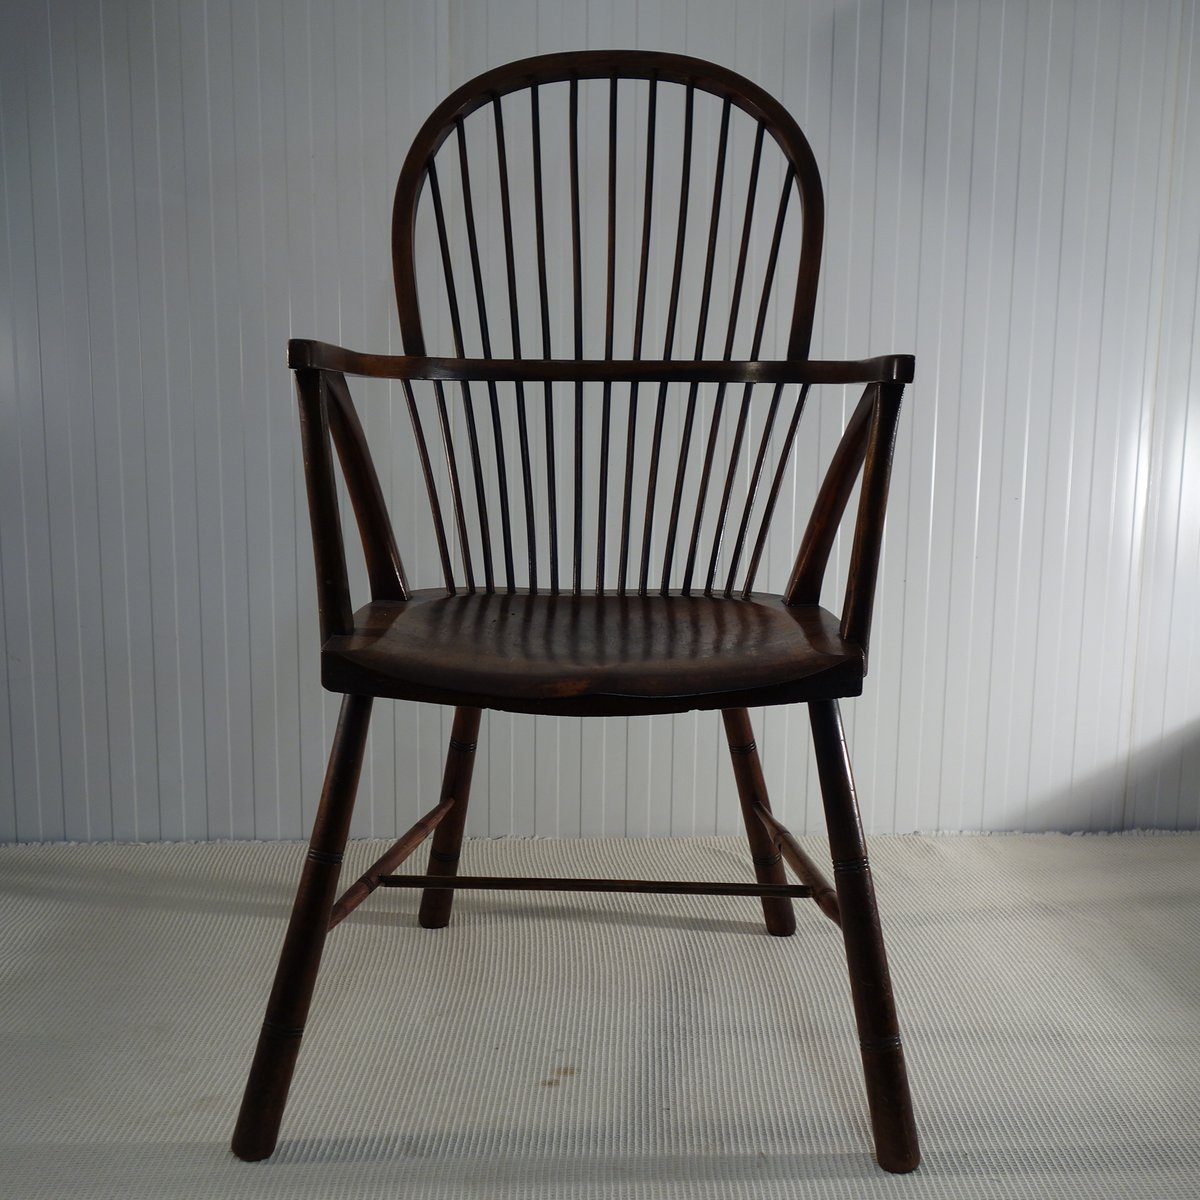 Antique Victorian Windsor Chair - Antique Victorian Windsor Chair For Sale At Pamono